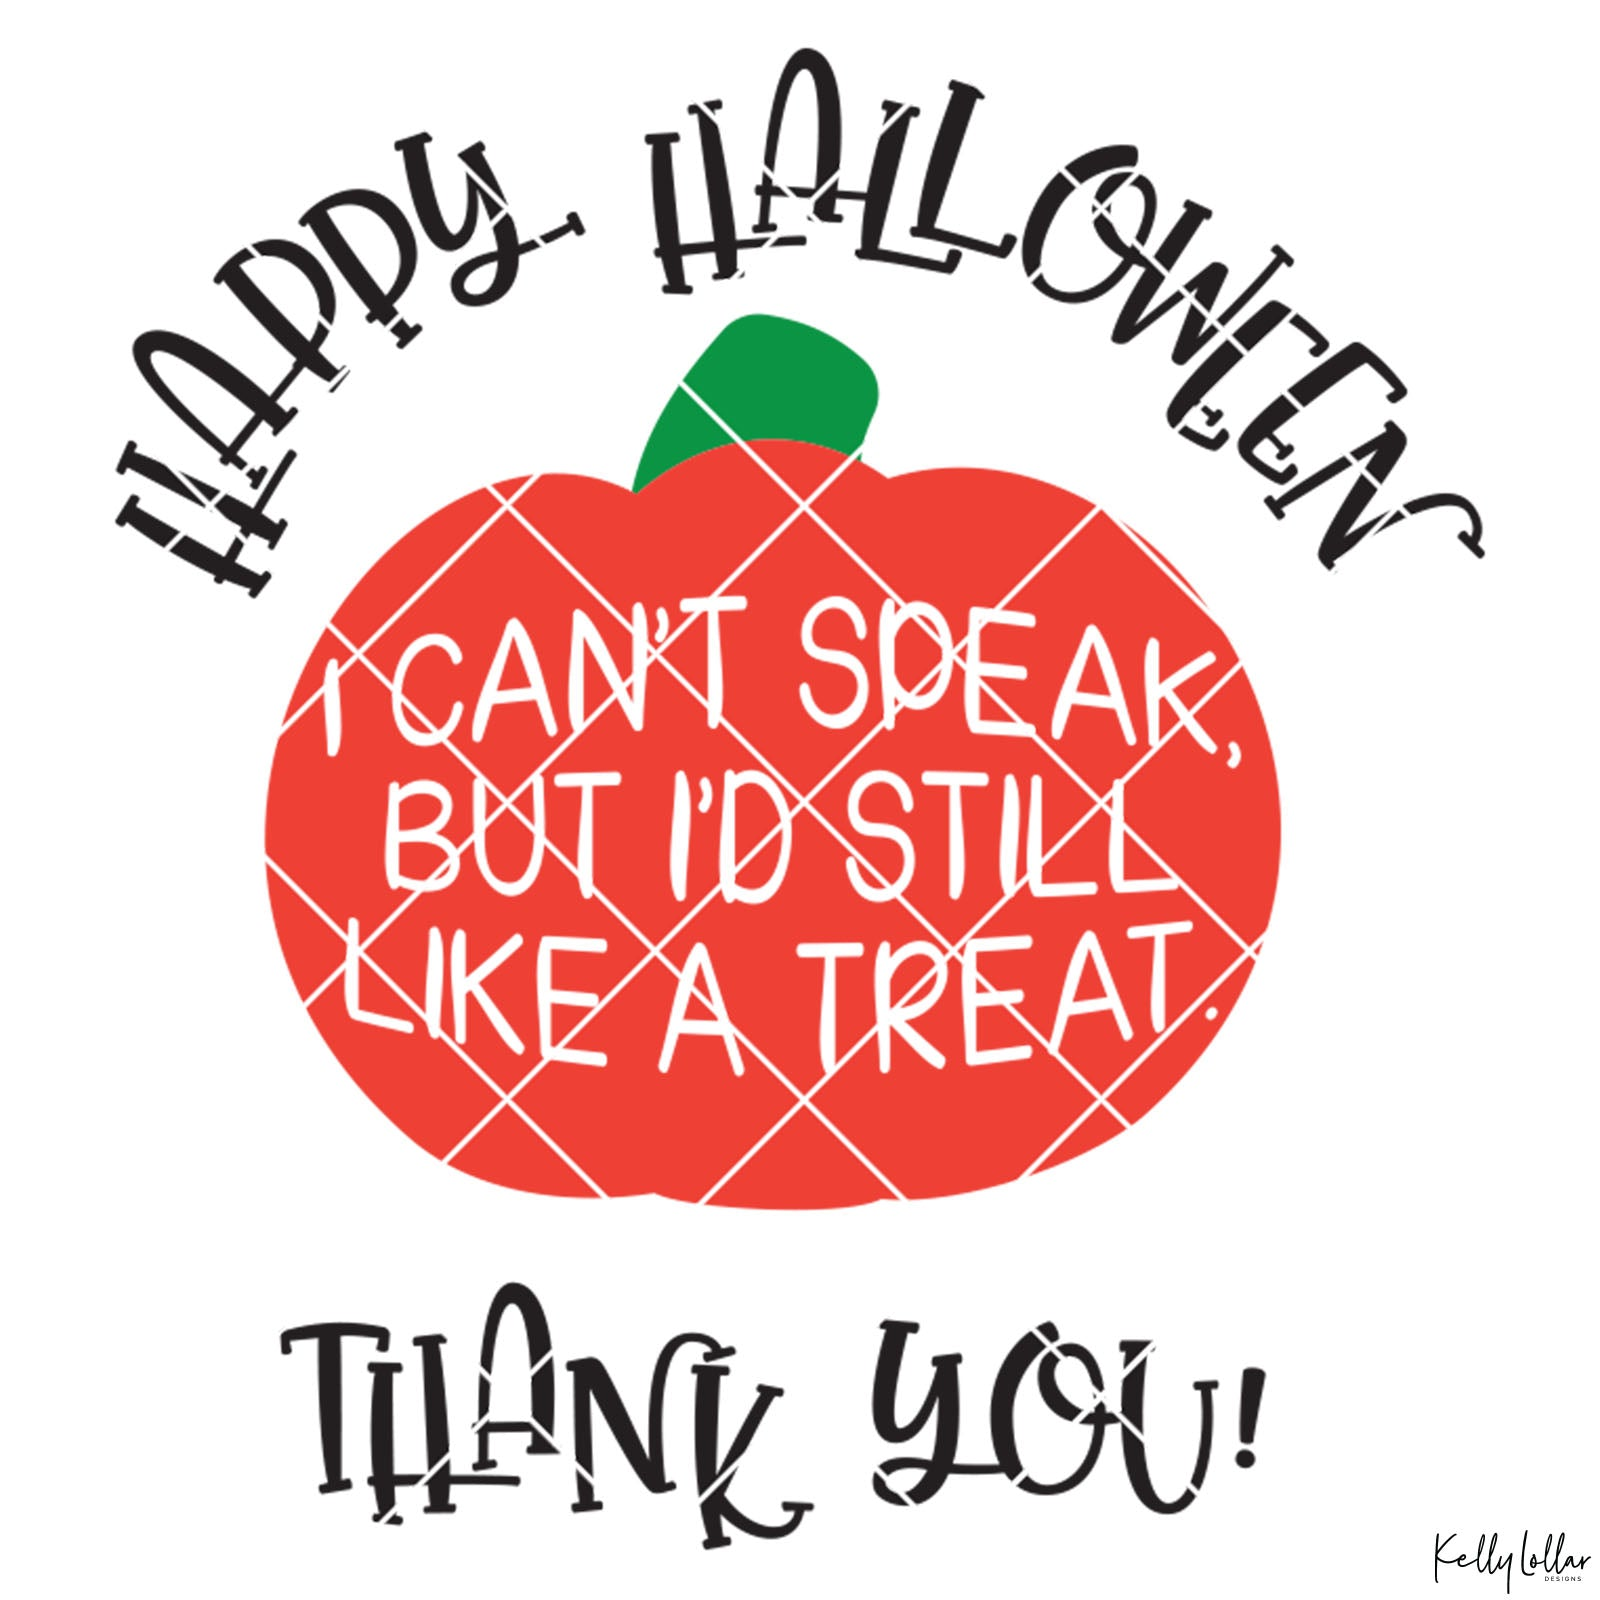 Non-Verbal Trick or Treat Bag Design with Pumpkin | SVG DXF PNG Cut Files | Free for Commercial Use